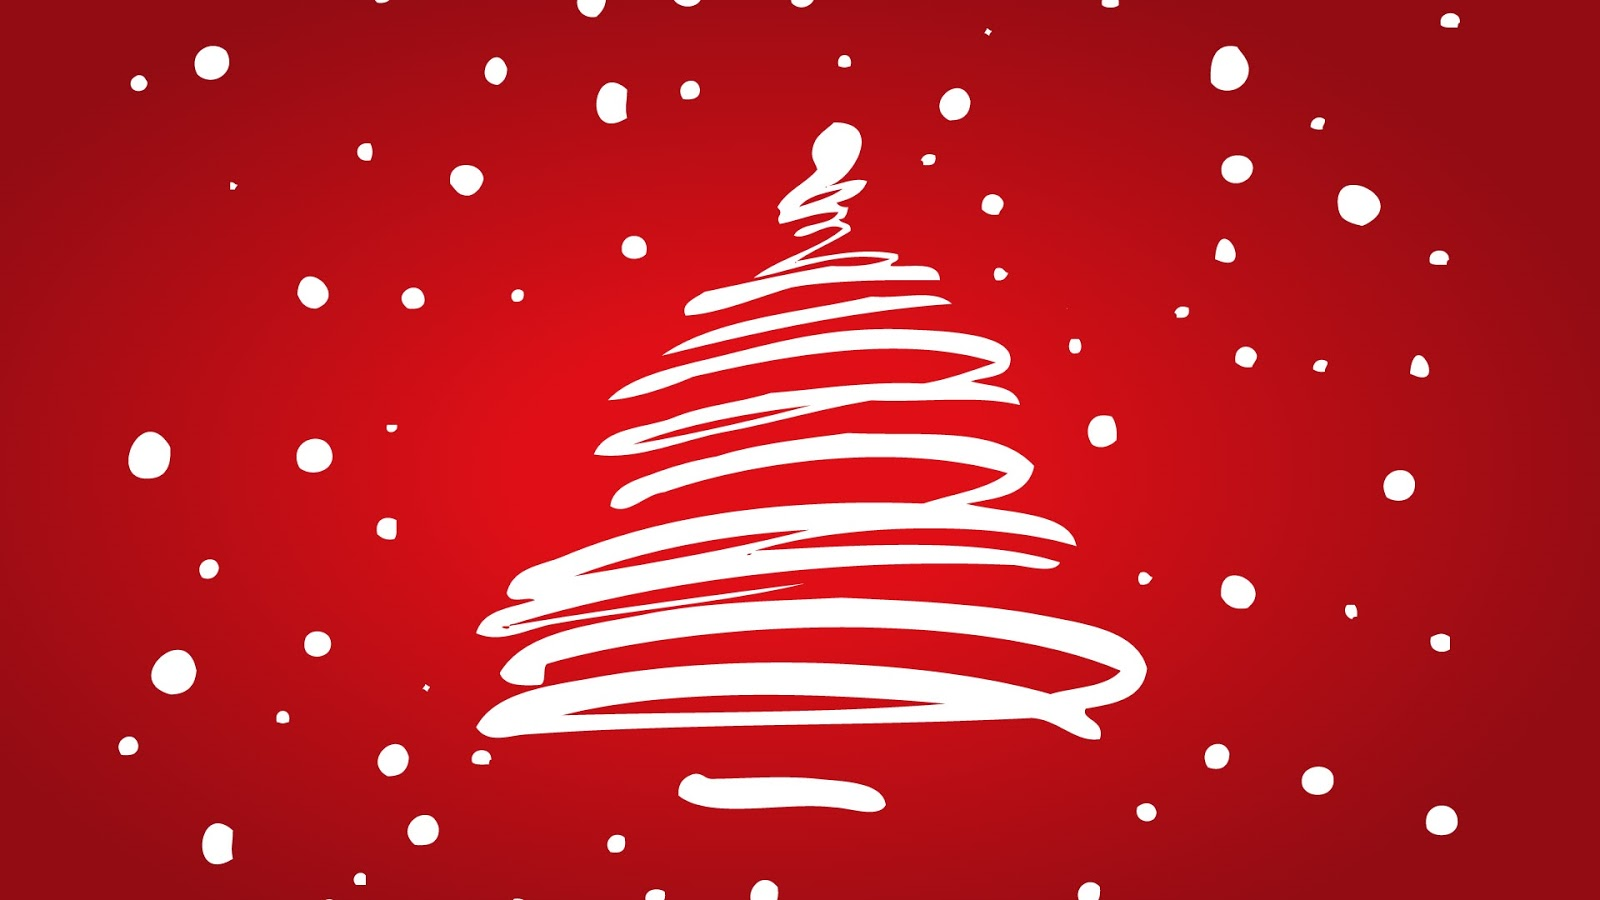 Hd wallpapers merry christmas and 2013 new year best - Hd christmas wallpapers 1080p ...